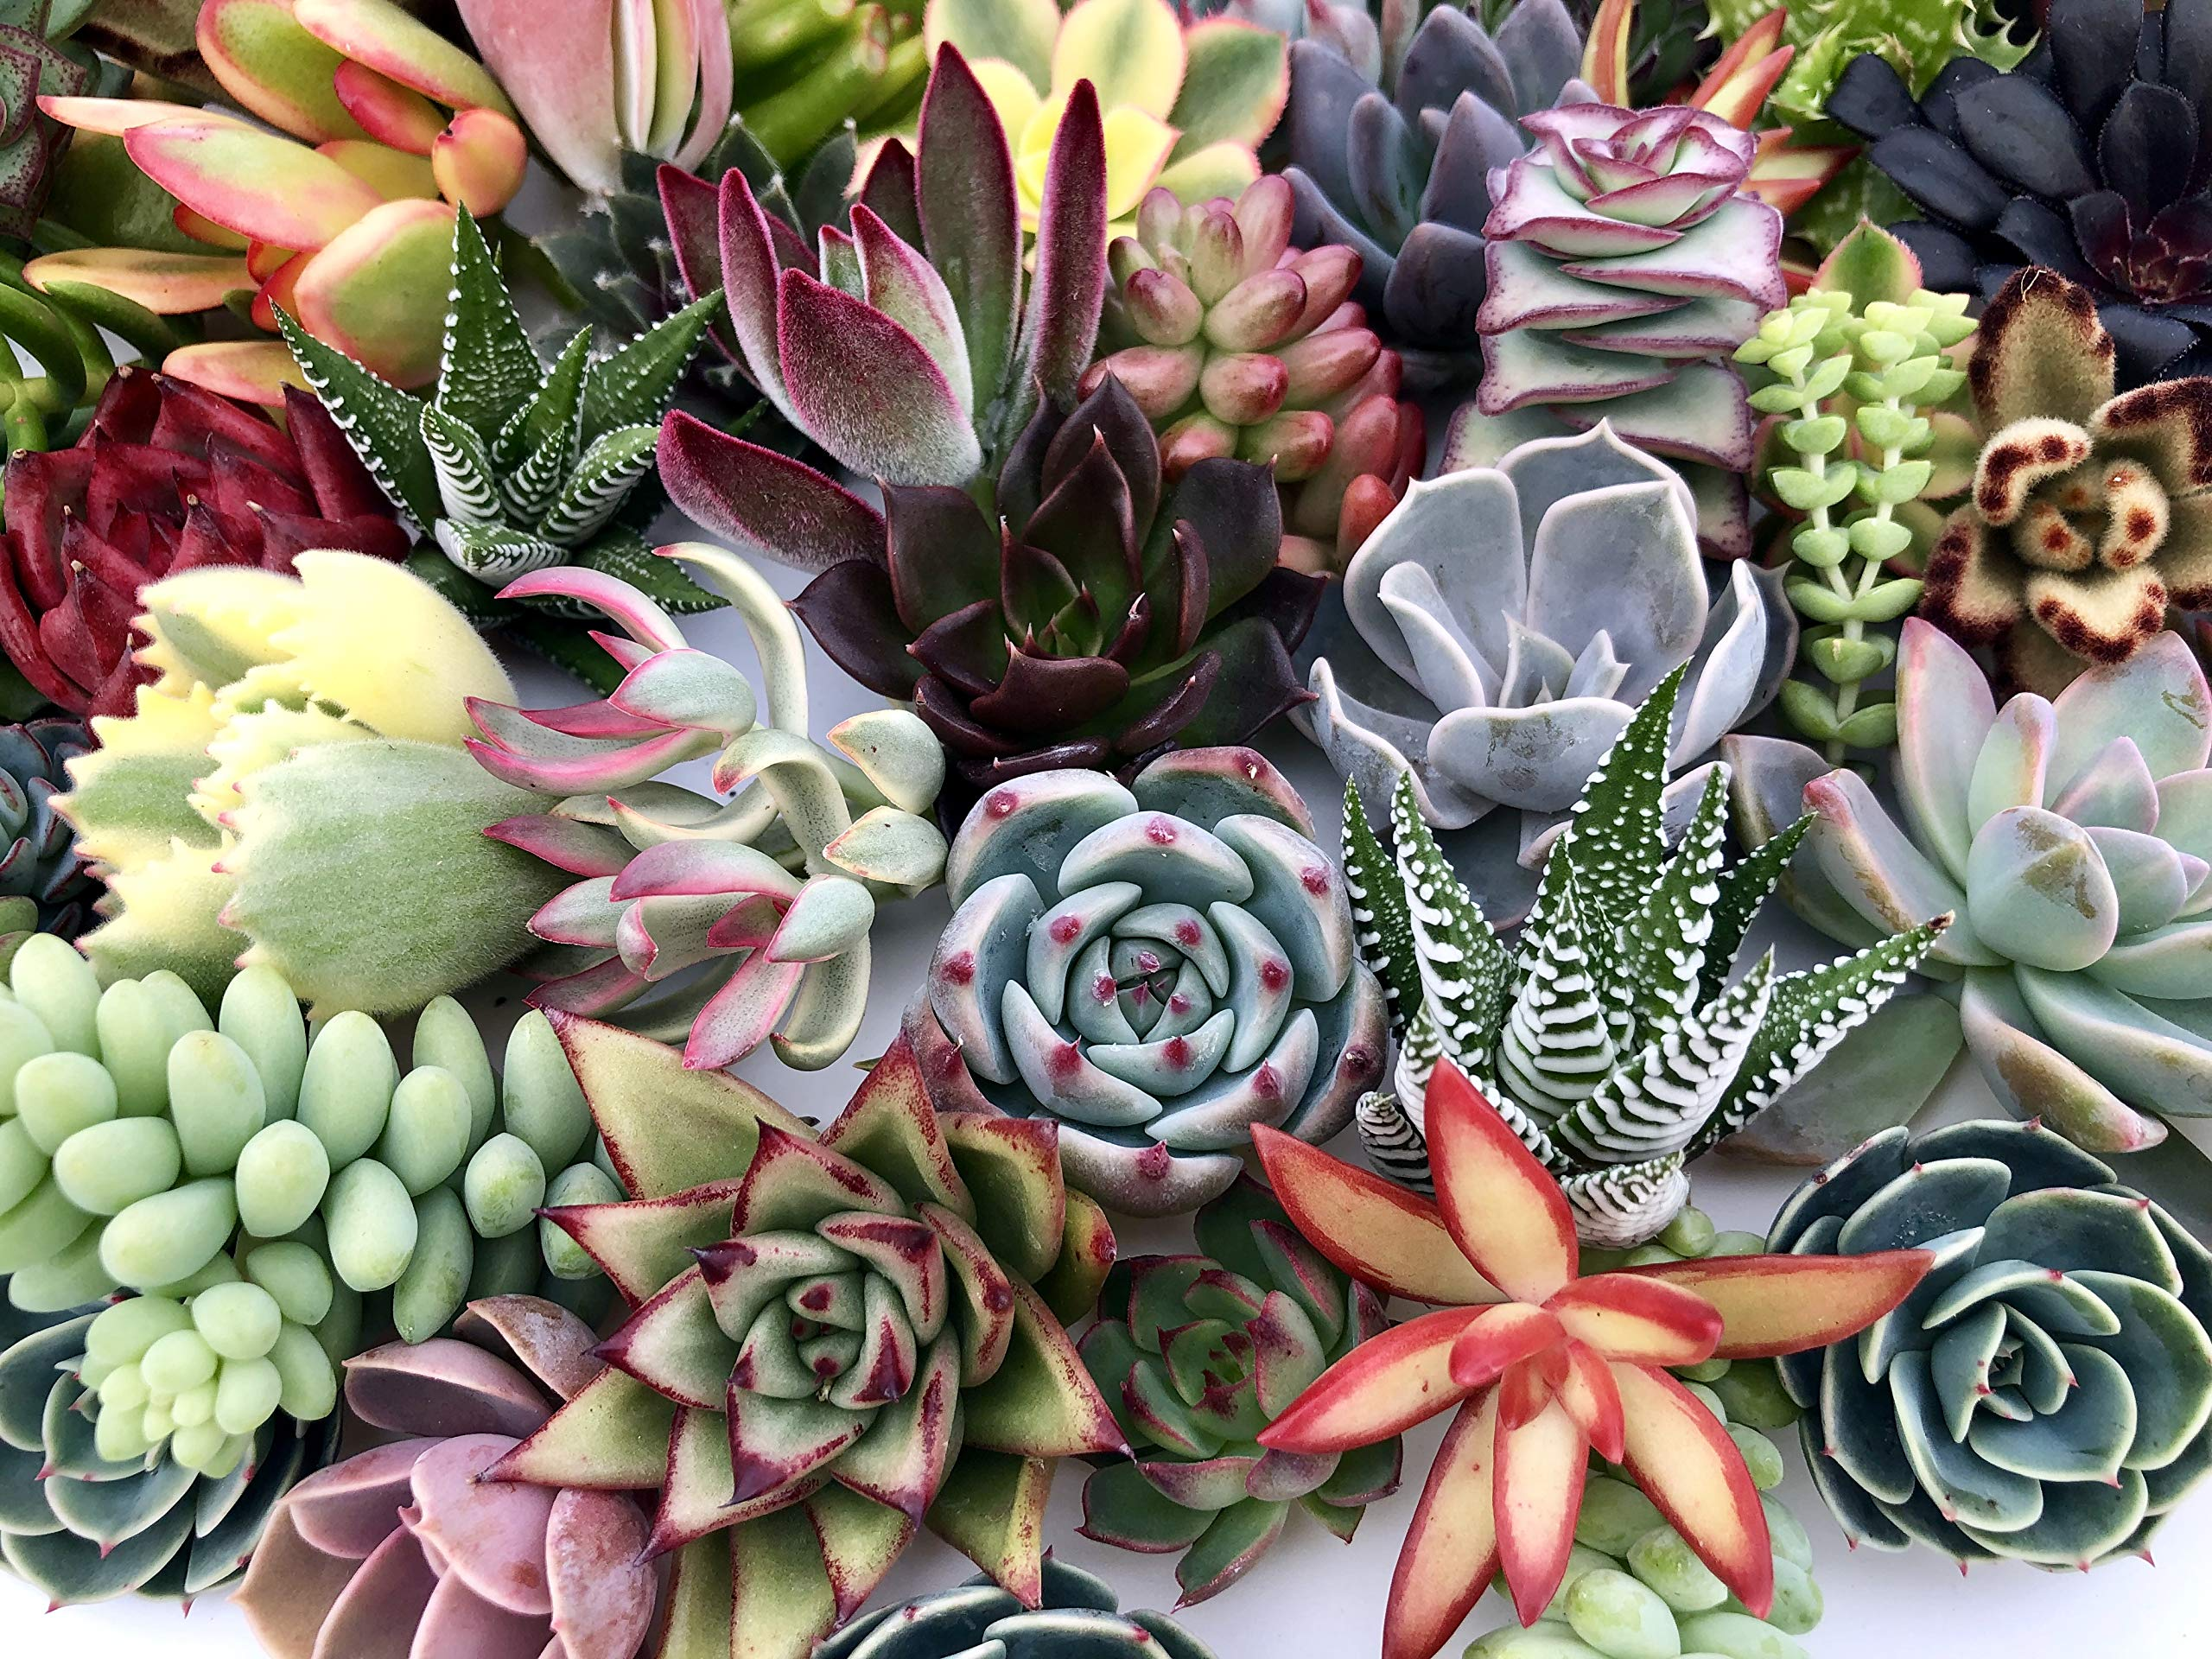 10 Assorted Live Succulent Cuttings, No 2 Succulents Alike, Great for Terrariums, Mini Gardens, and as Starter Plants by The Succulent Cult by The Succulent Cult